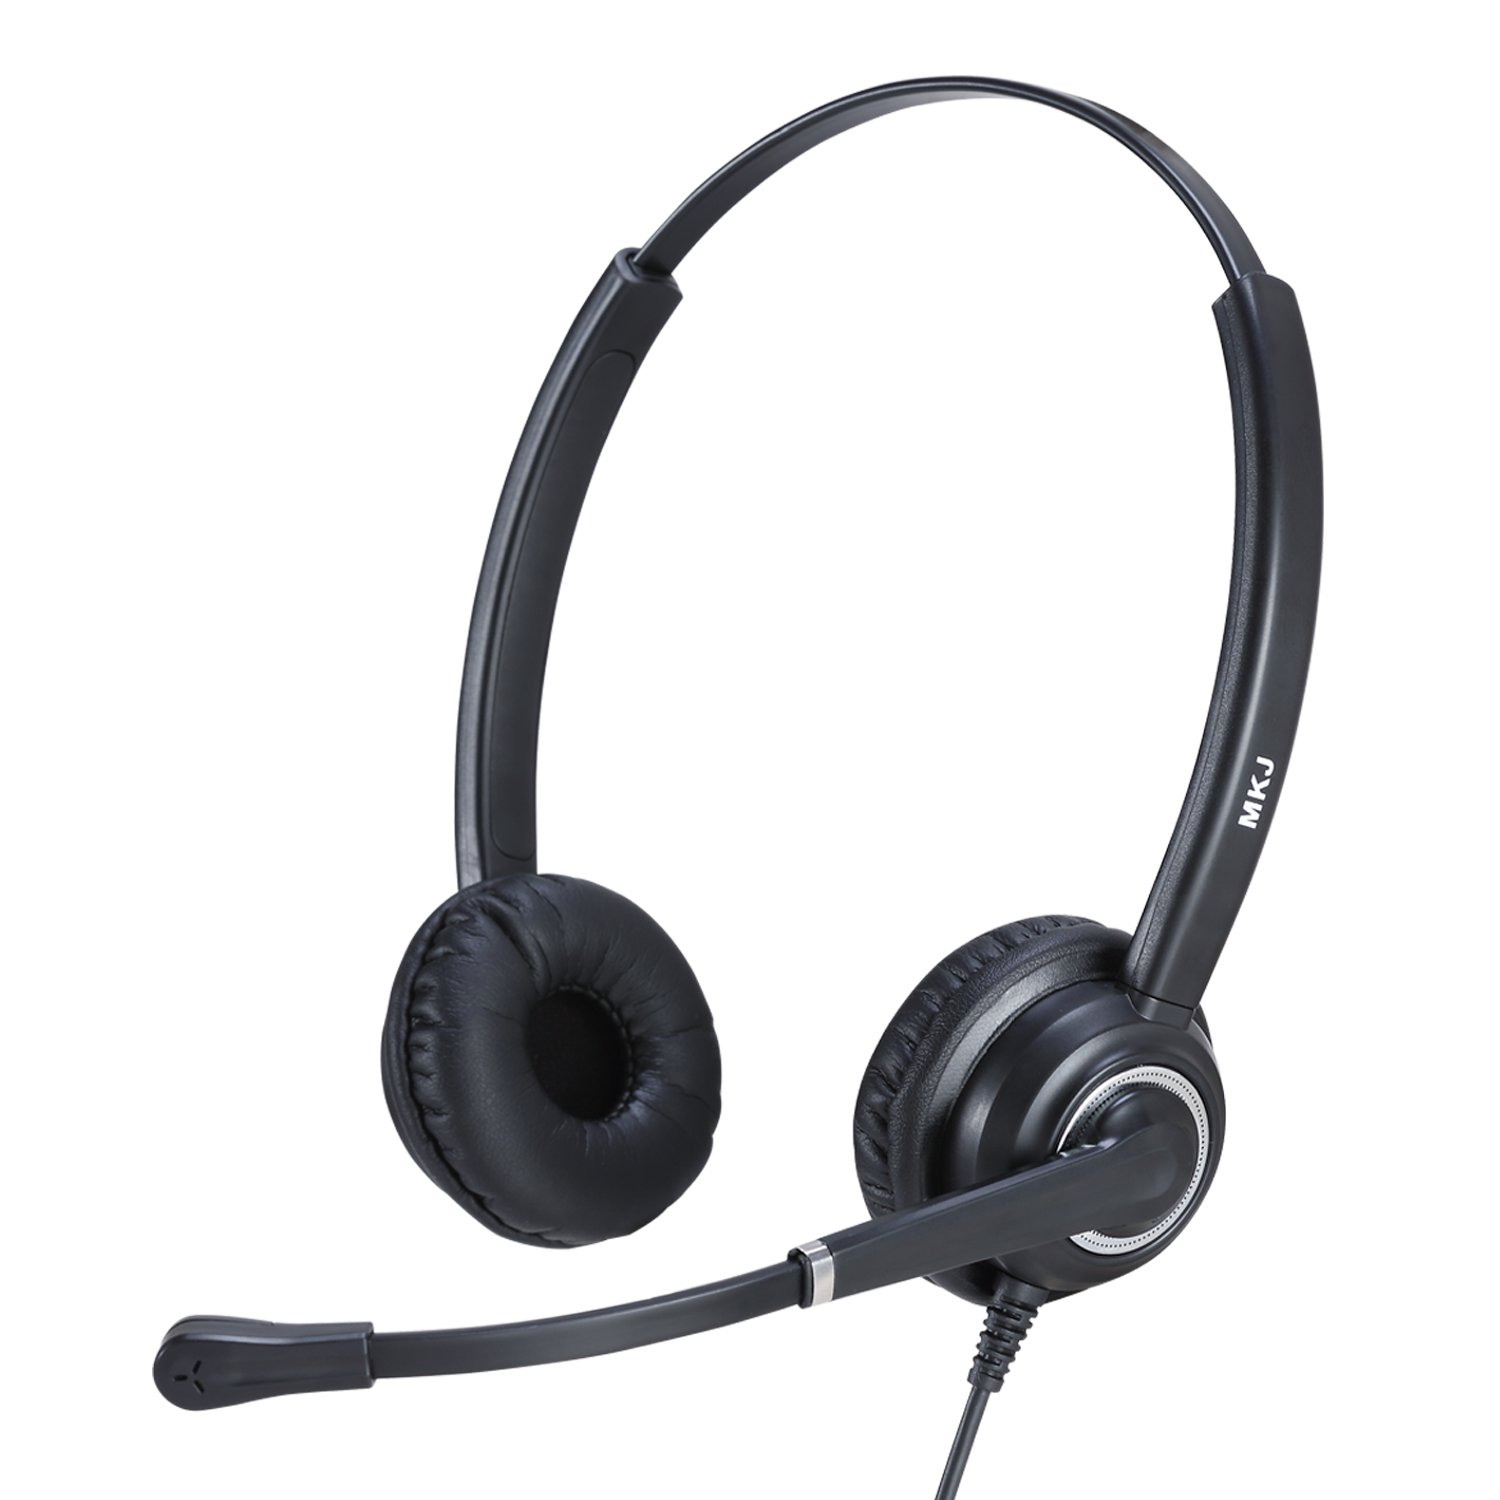 Cisco Headset with RJ9 QD Plug and Noise Cancelling Microphone for Cisco 7931G, 7940, 7941G, 7942G, 7945G, 7960, 7961, 7961G, 7962G, 7965G, 7970